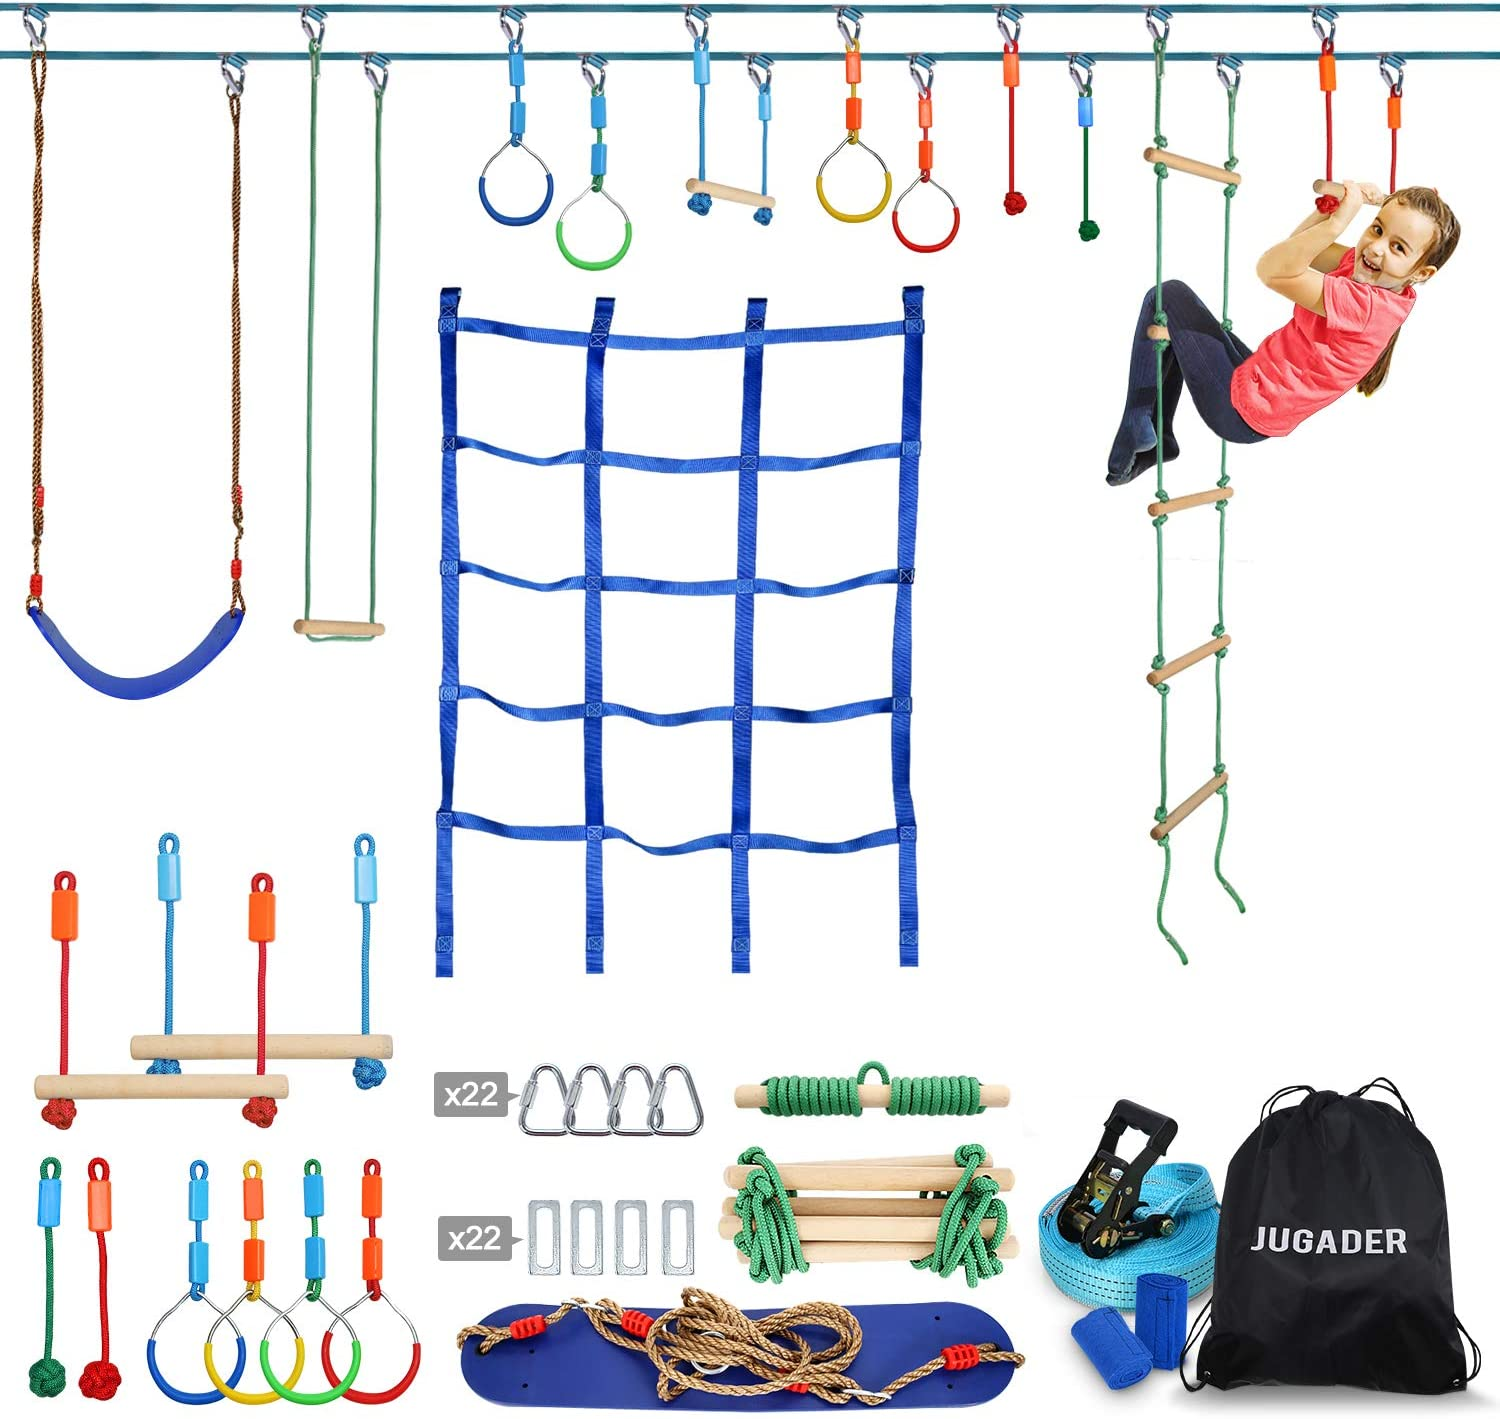 Jugader Ninja Warrior Obstacle Course for Kids - 2X50FT Ninja Slackline with Climbing Net, Swing, Ladder, Long & Short Monkey Bars, Gym Rings, Rope Knots (Double Line Design)